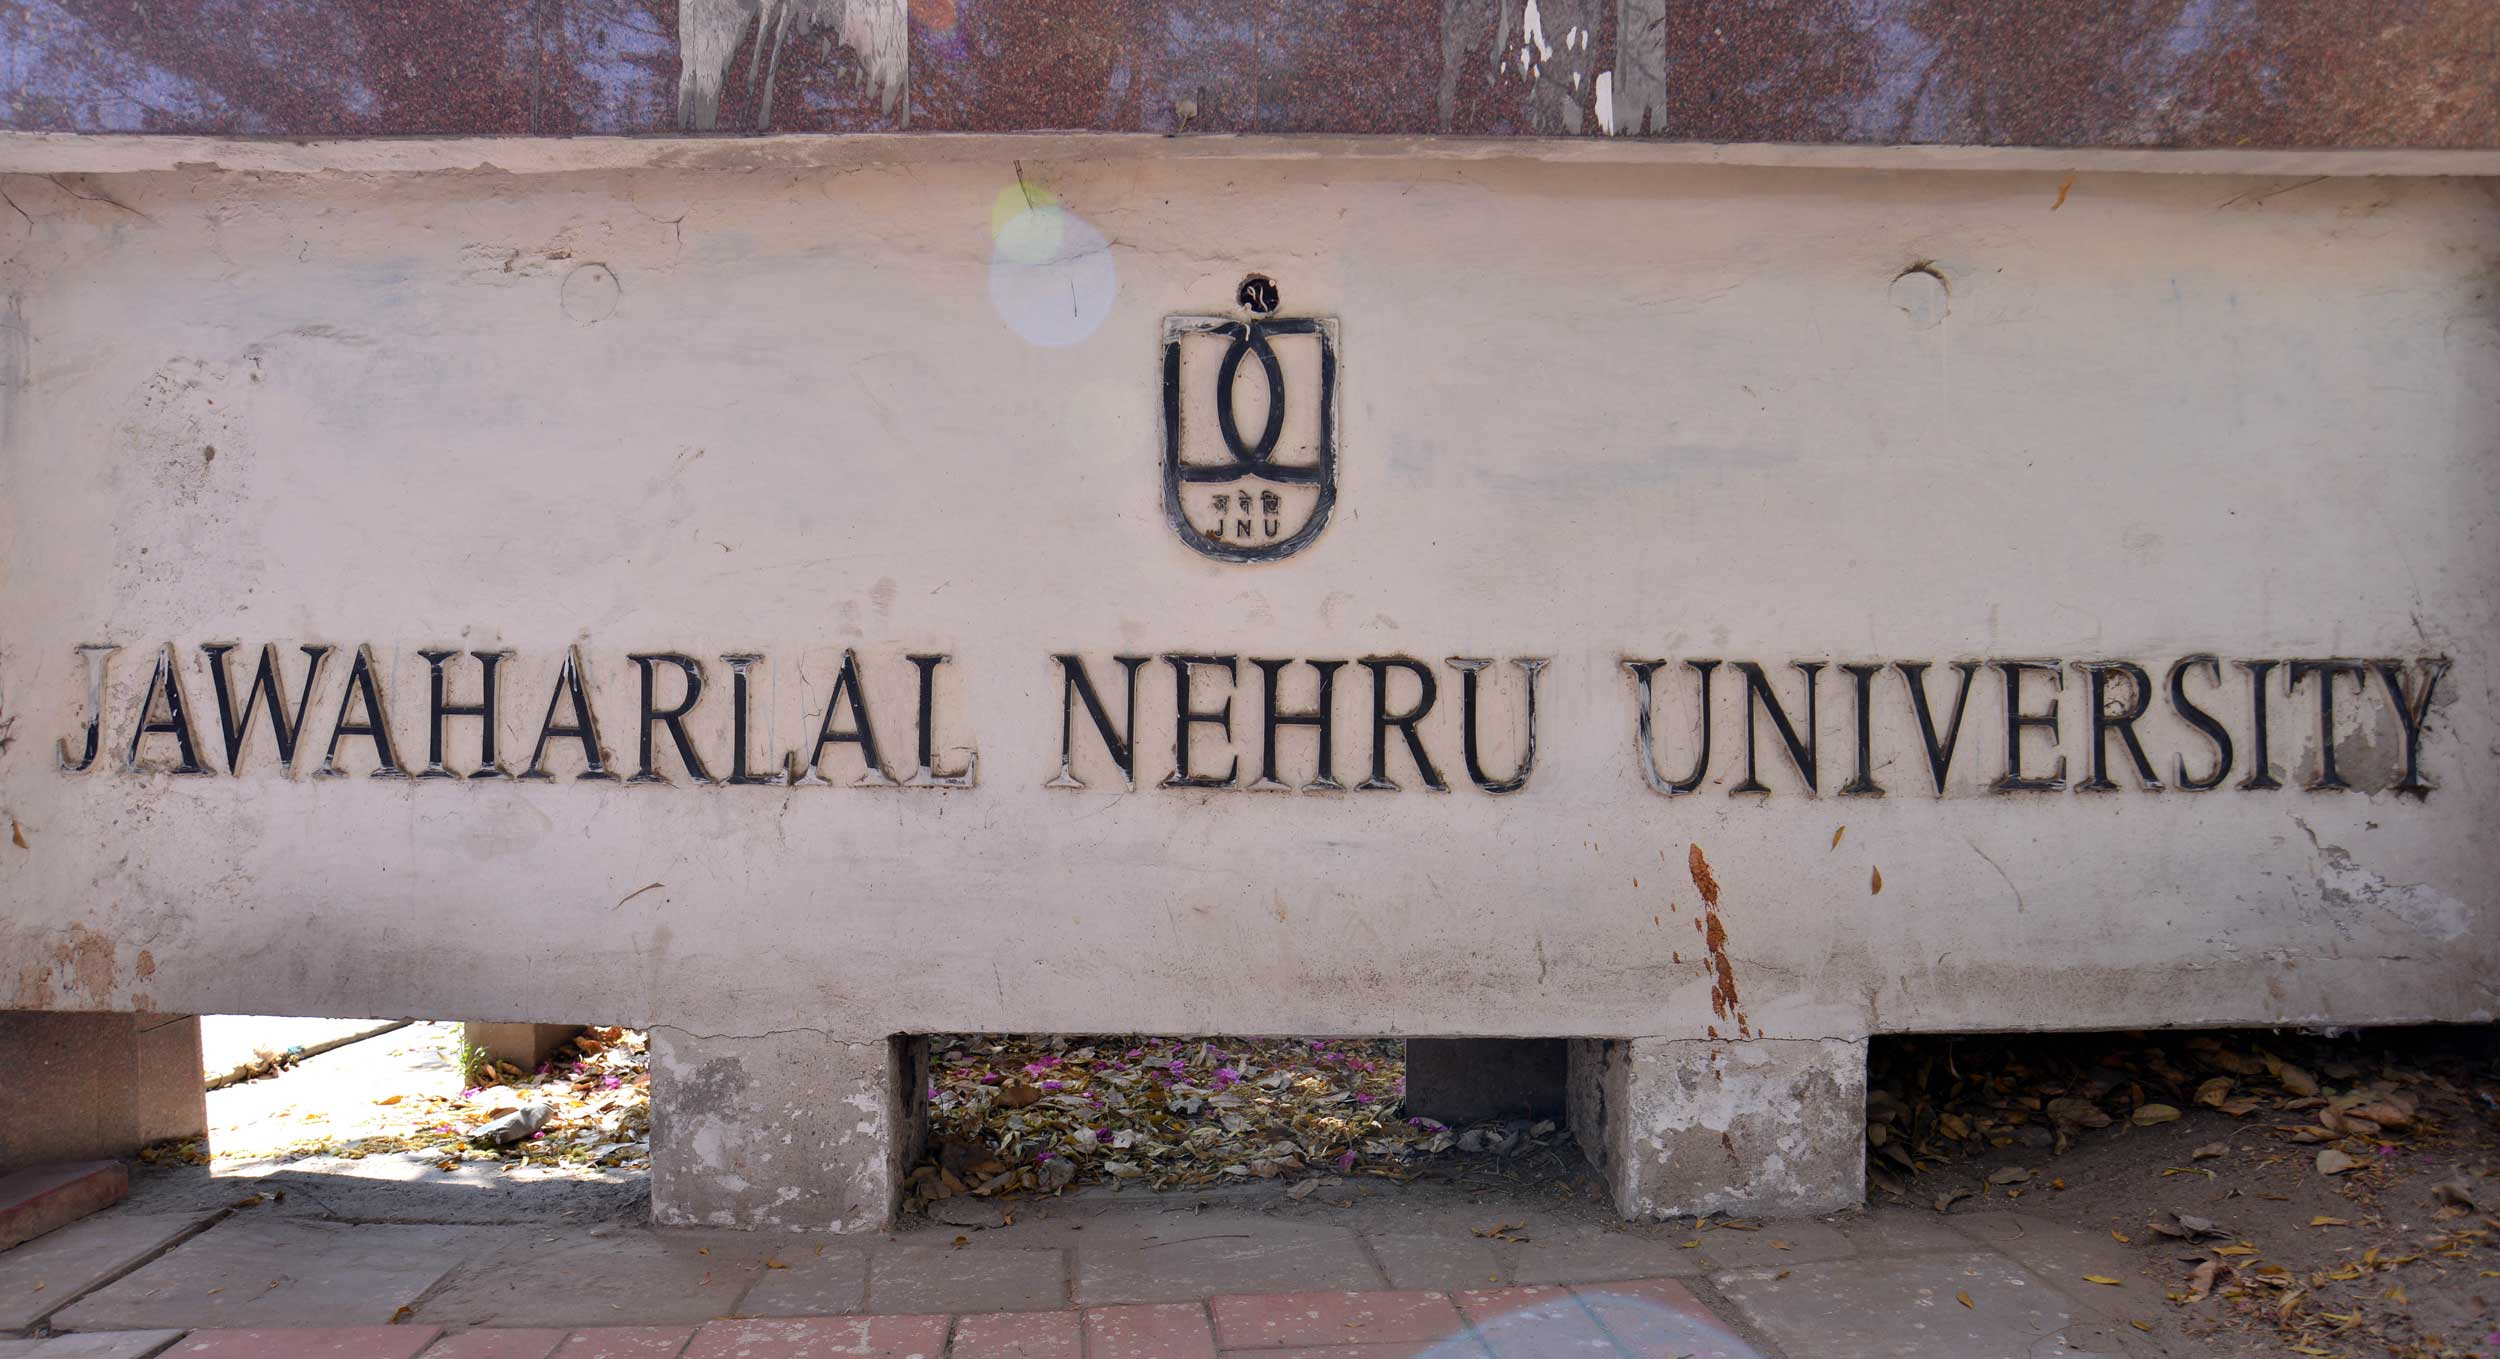 The JNU executive council had decided in August that teachers must mark their attendance in keeping with University Grant Commission regulations that the university had adopted.